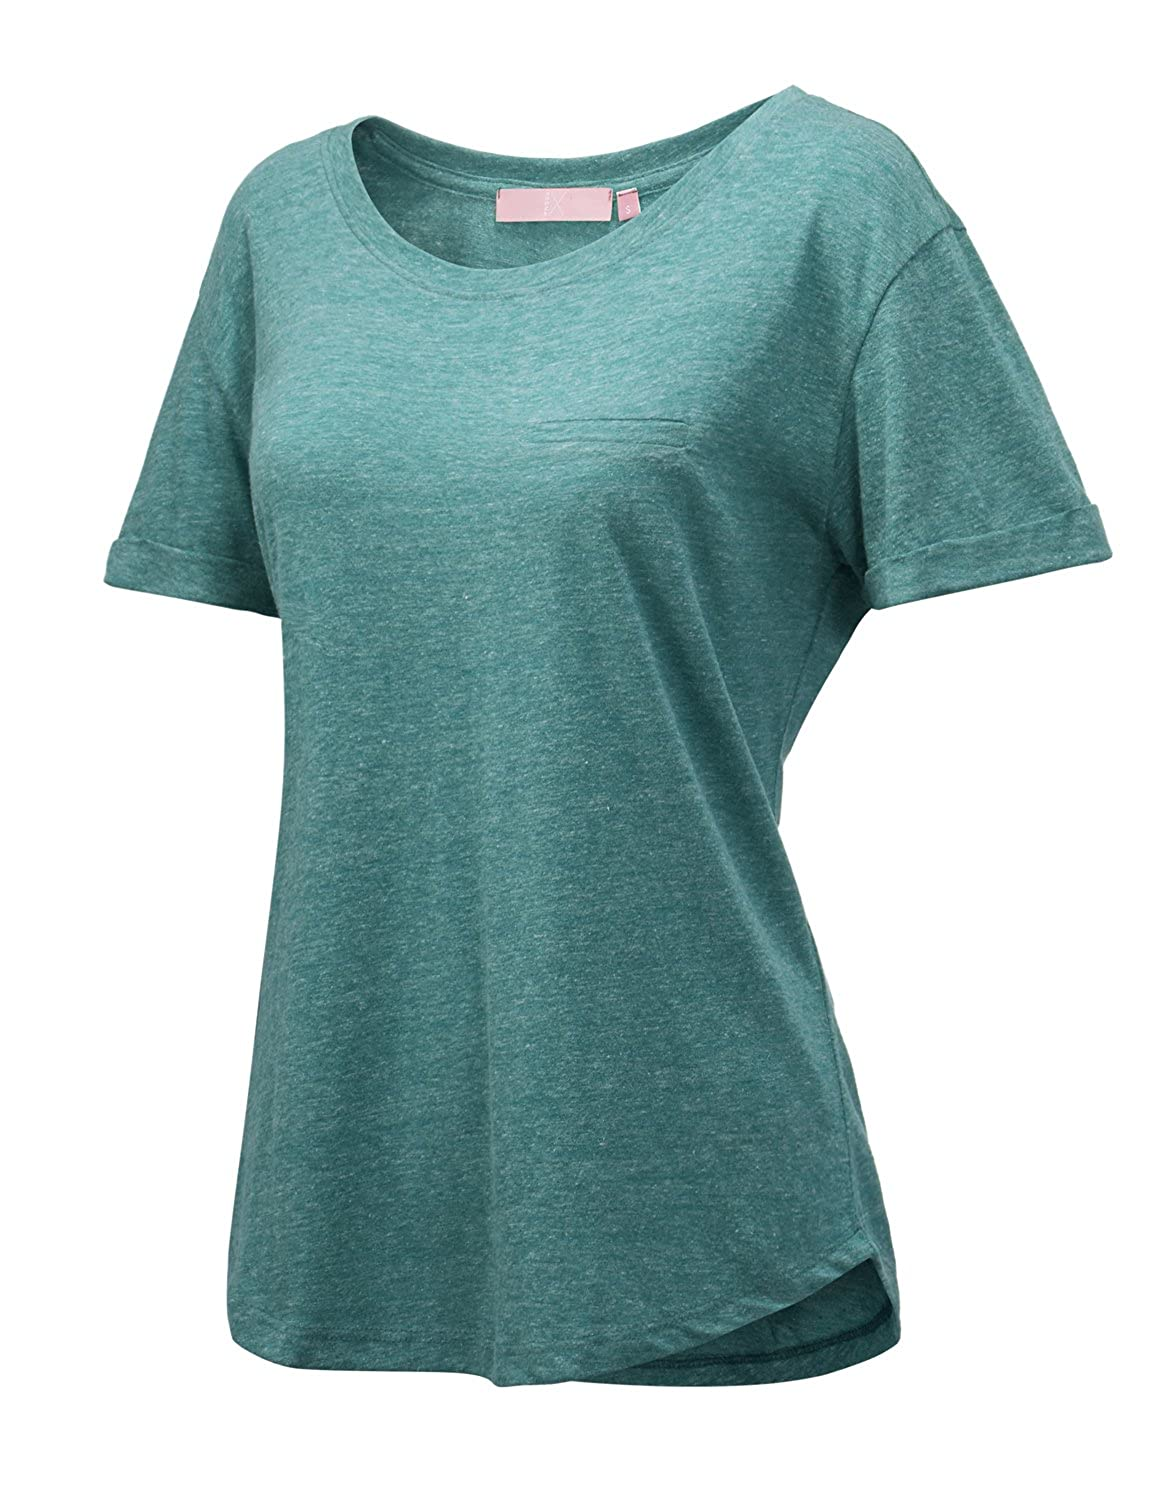 18502_grx Regna X Triblend Short Sleeve T Shirts (2 Styles, Have Plus Sizes)